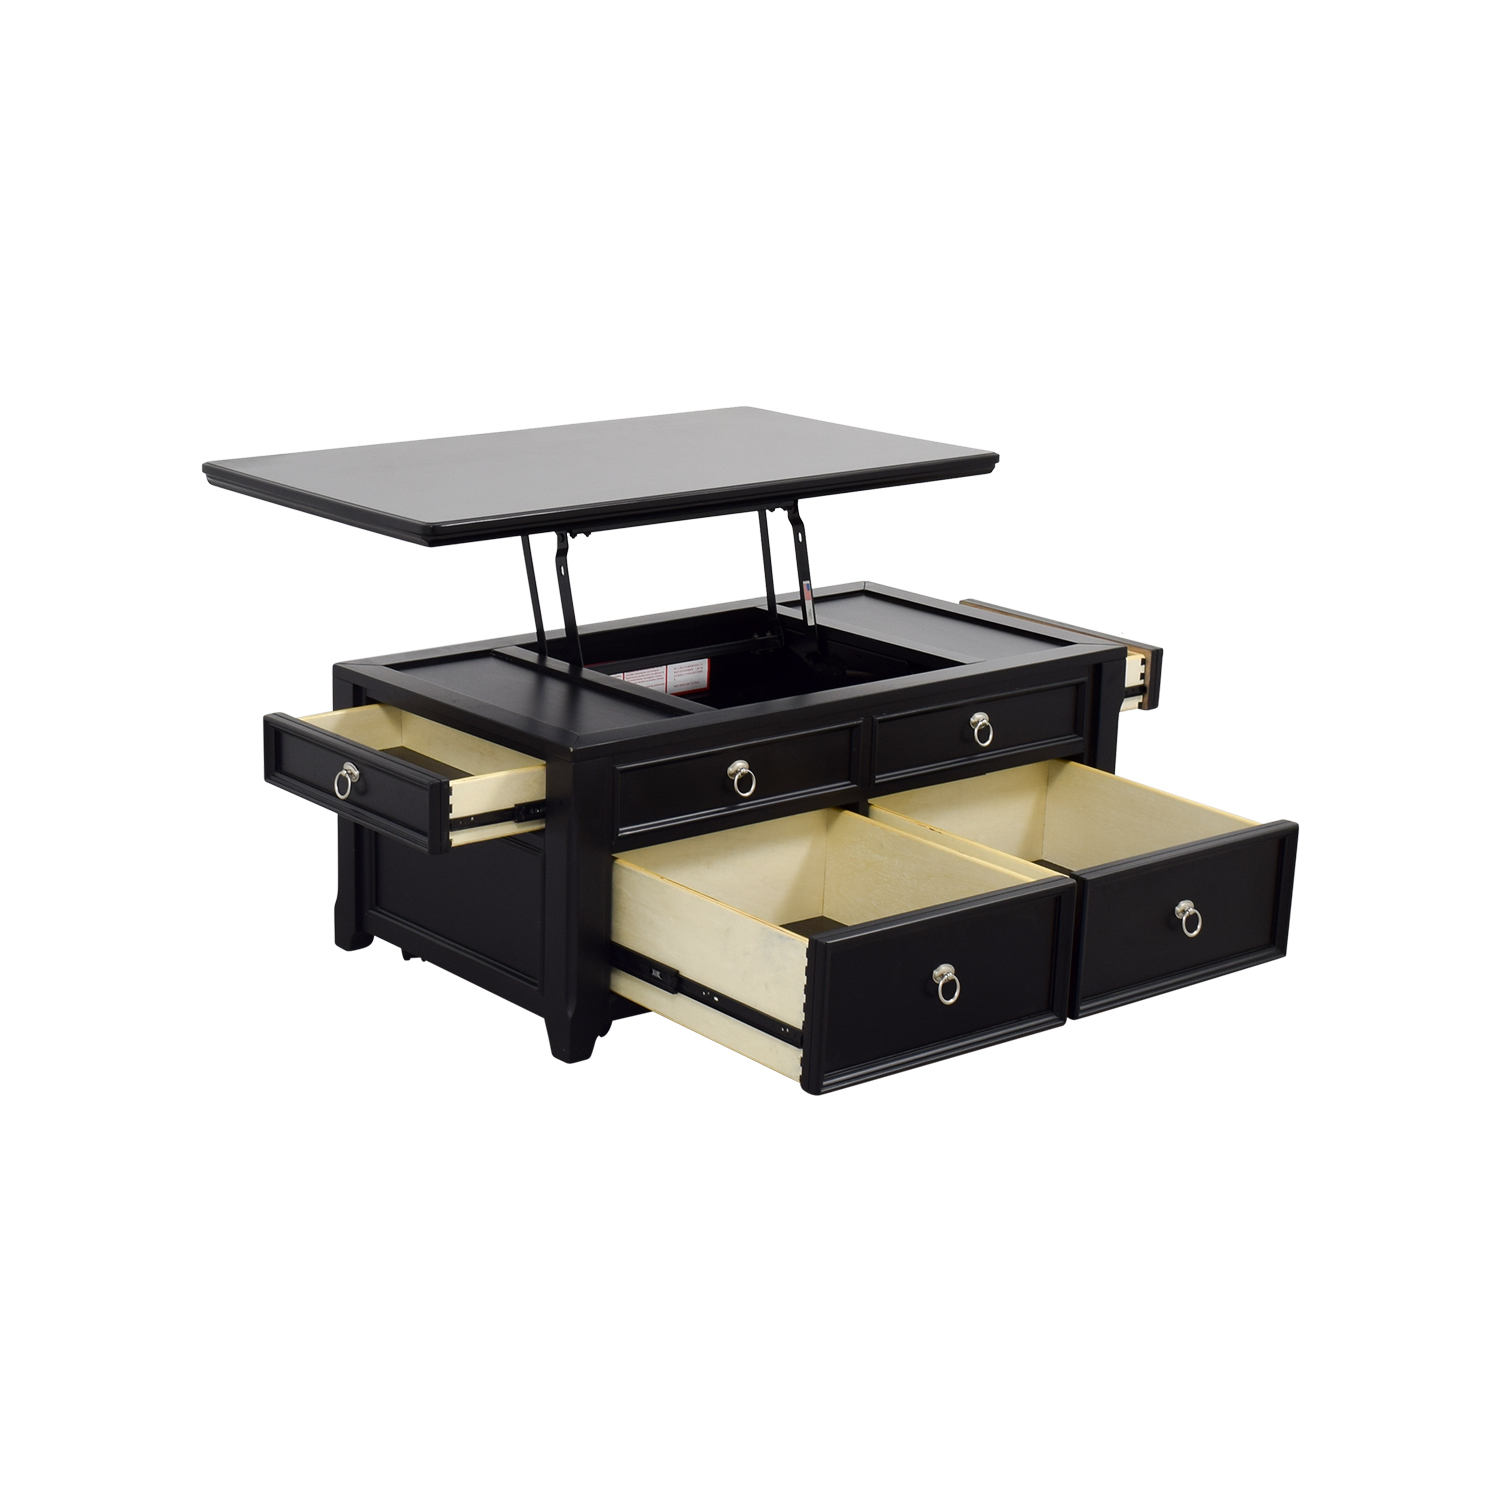 off  ashley furniture ashley furniture black lifttop coffee  -  ashley furniture ashley furniture black lifttop coffee table